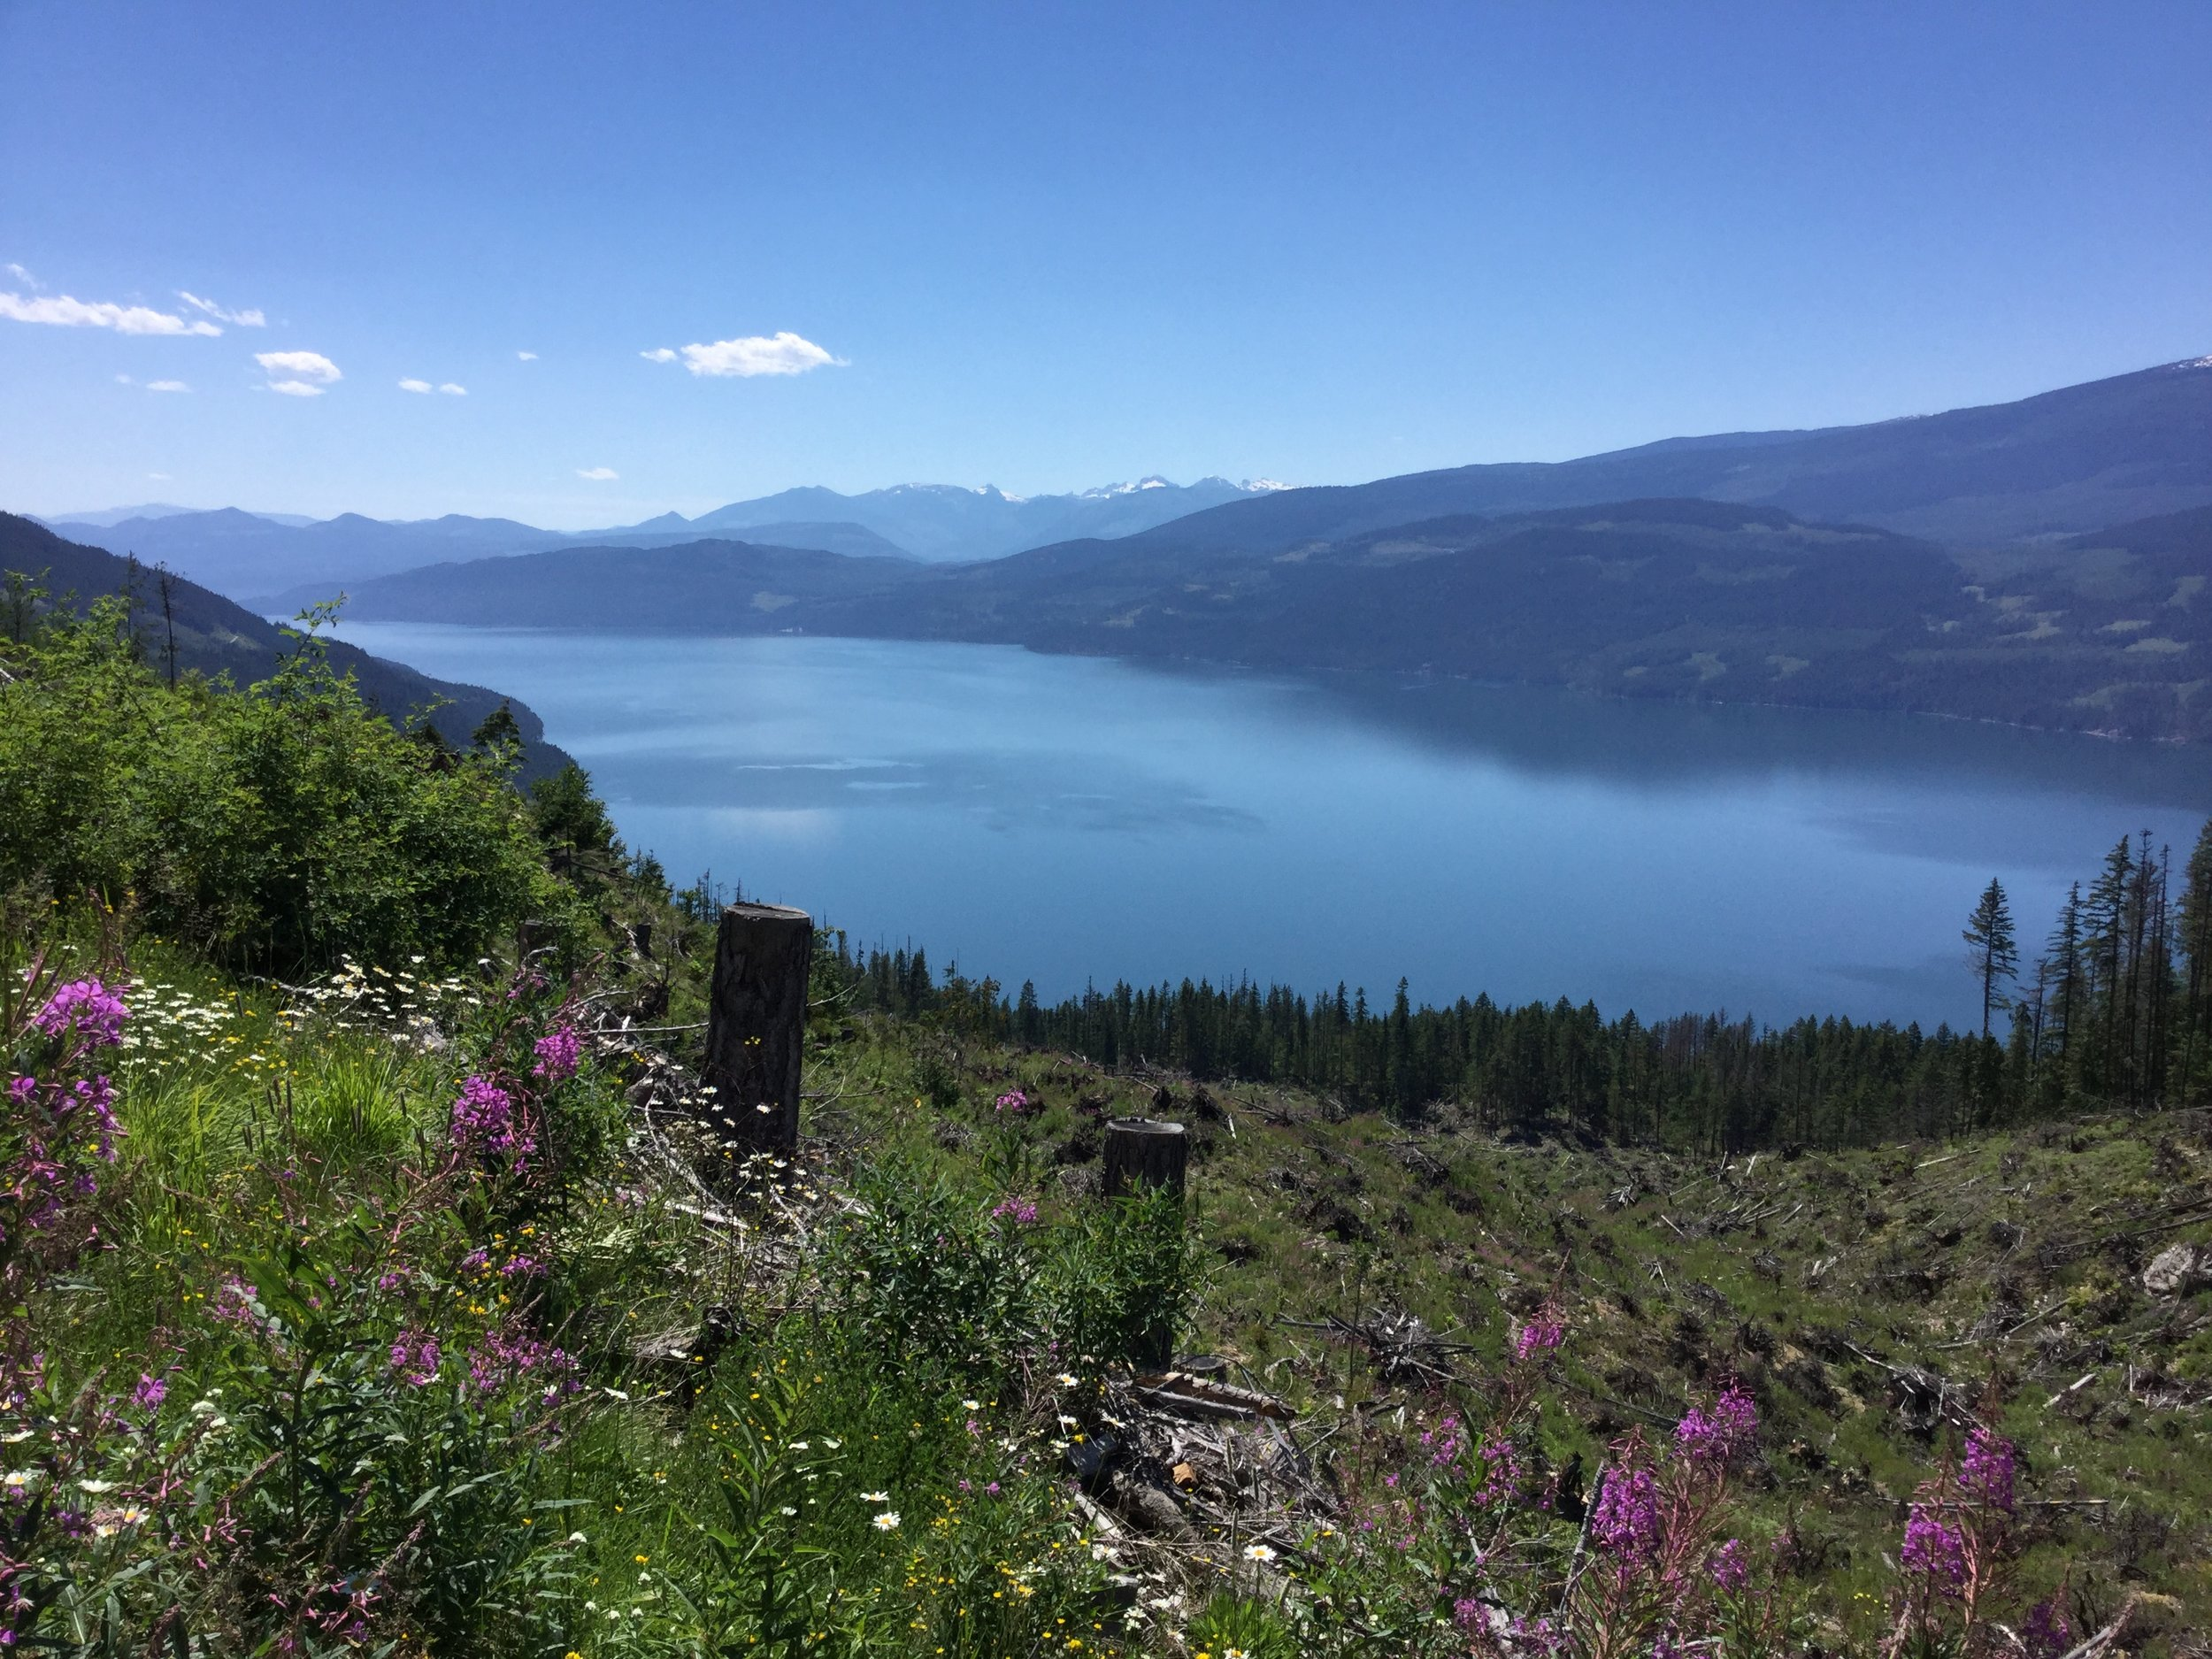 Looking southwest in the Columbia River Valley near Nakusp.